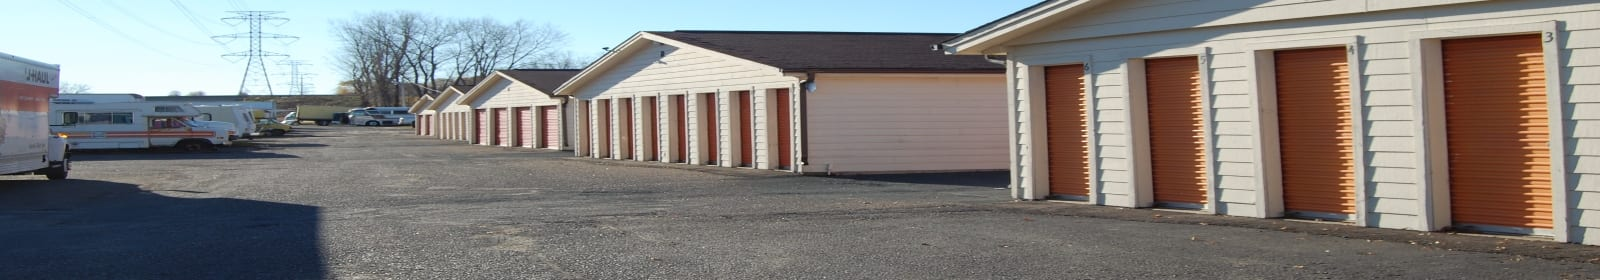 Coon Rapids Storage features